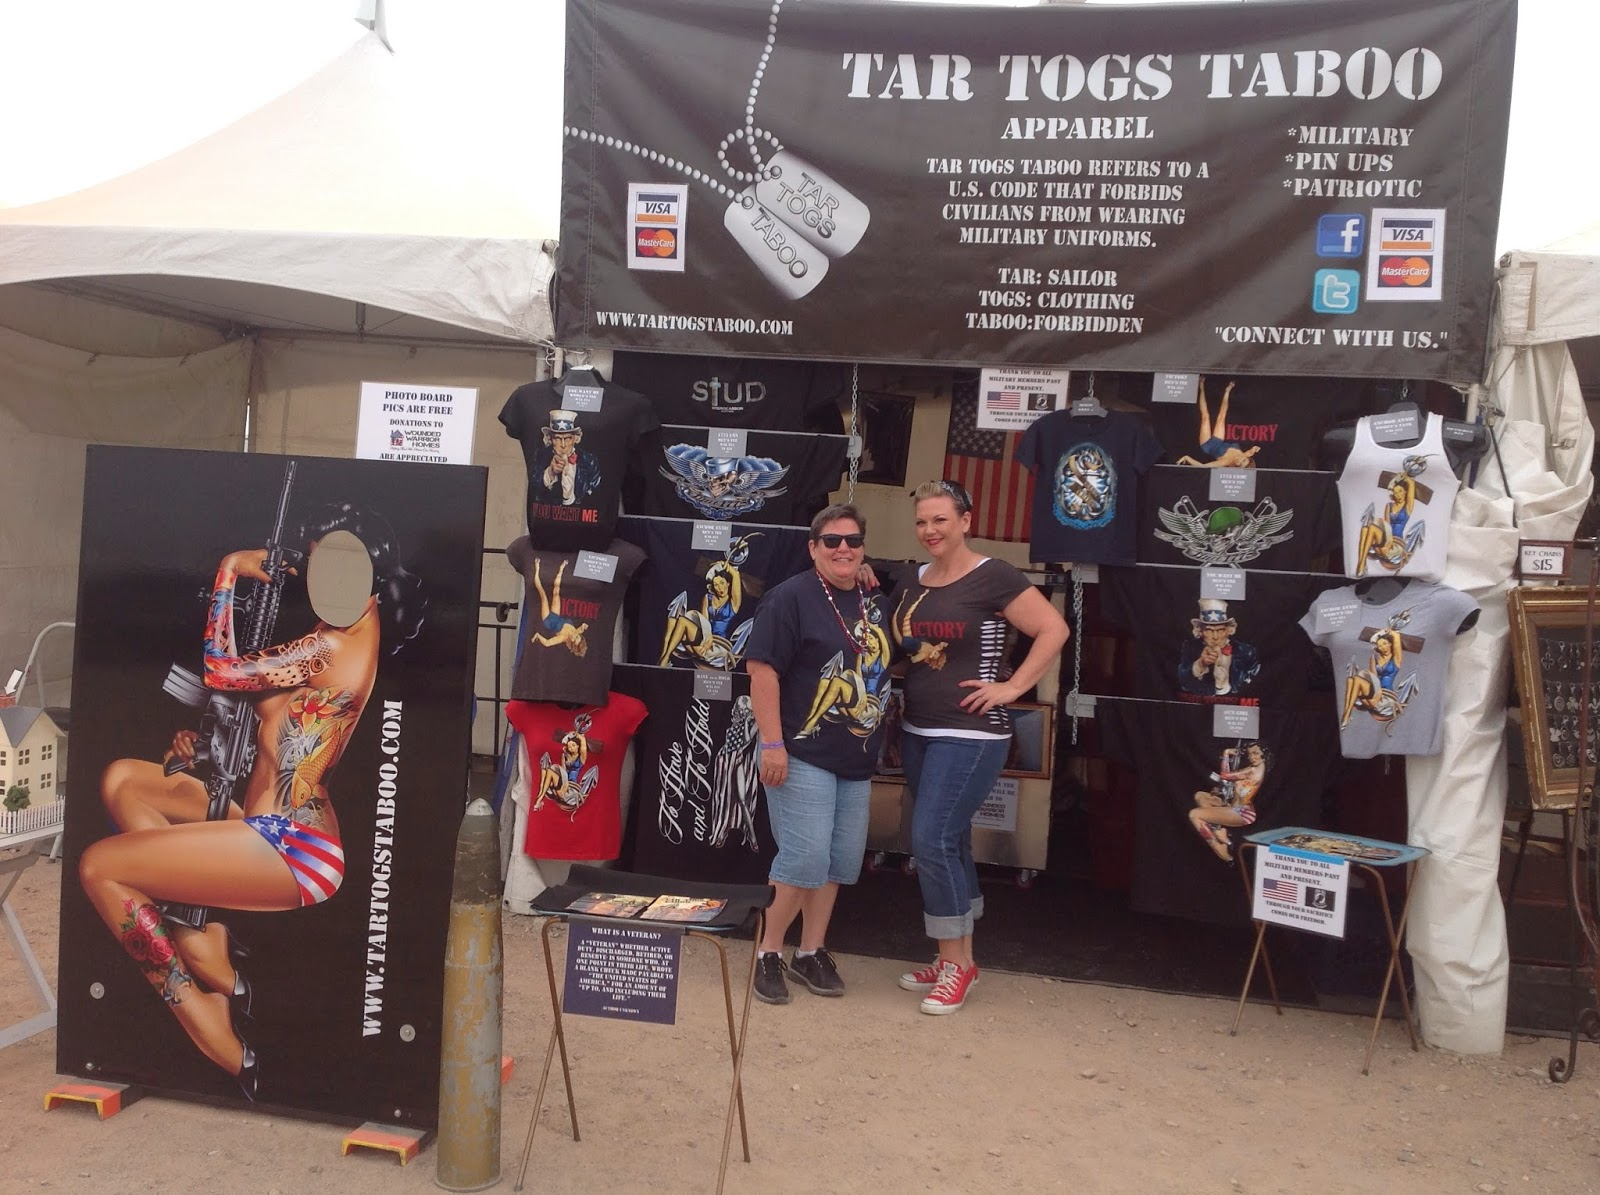 Tar Togs Taboo military clothing